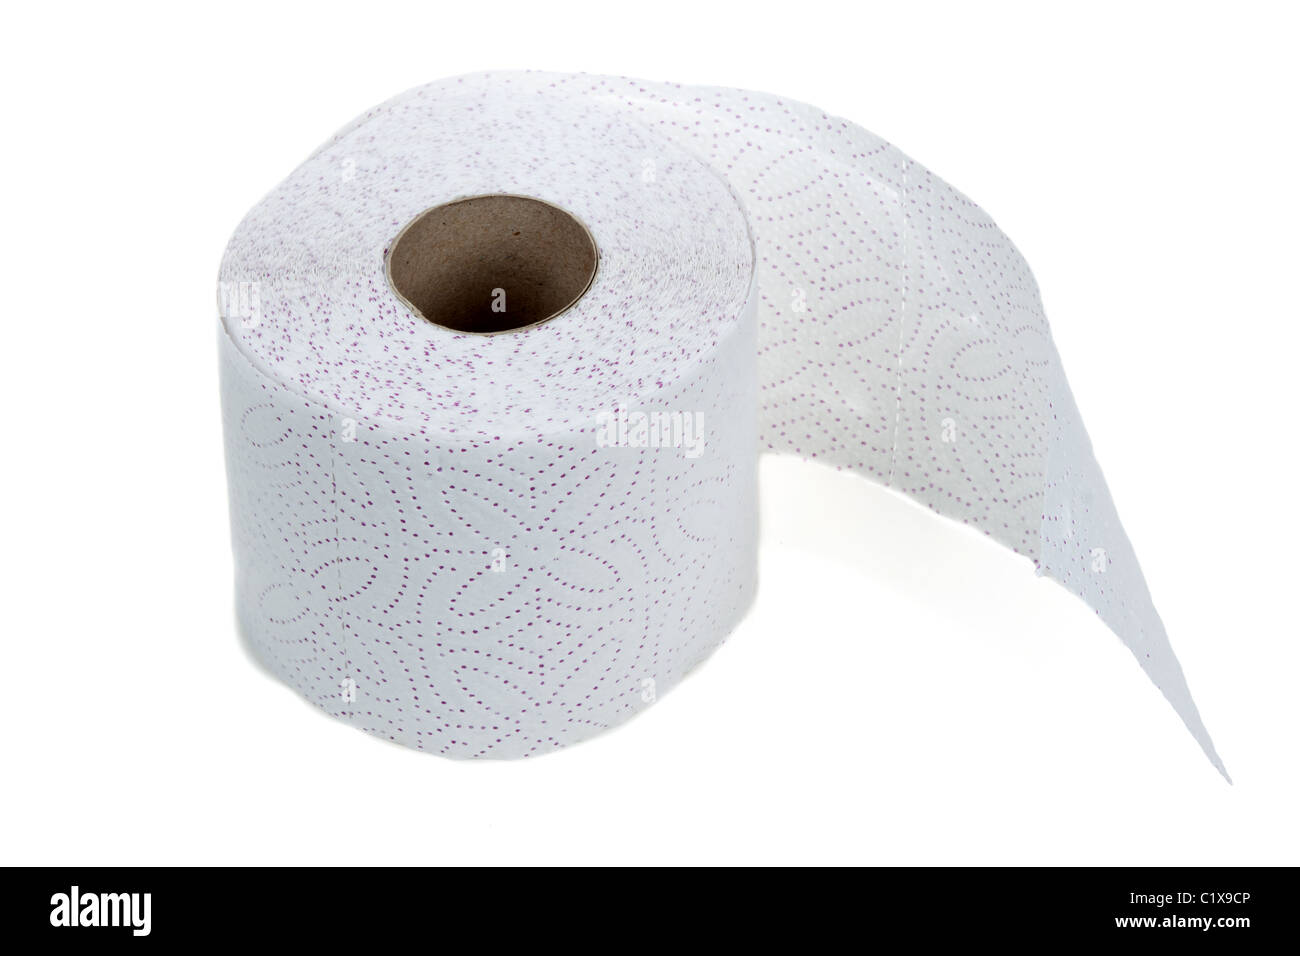 Perforated toilet paper in roll on white background - Stock Image